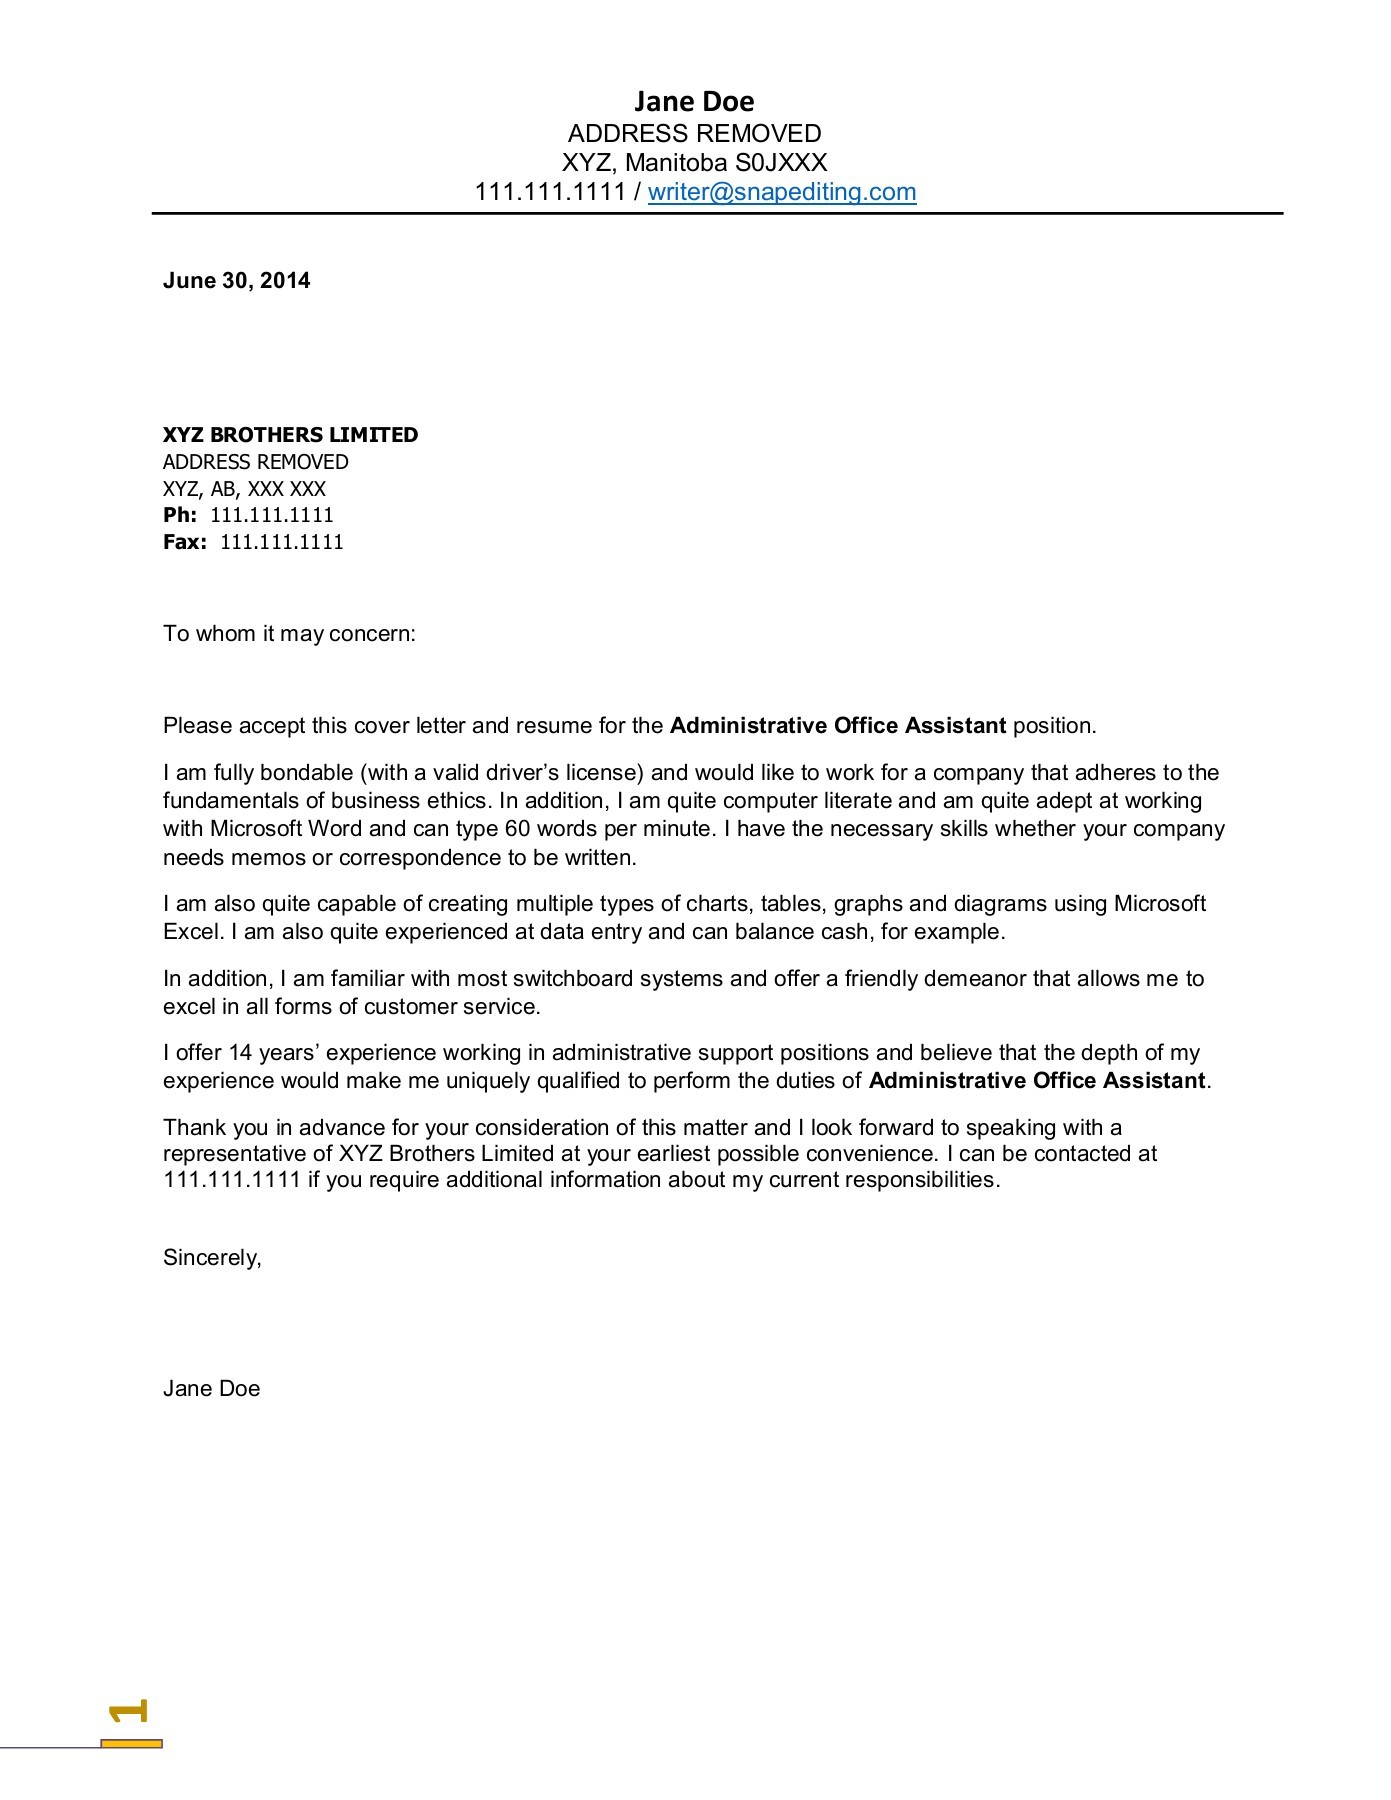 Hyperlink Email In Resume 10 Perfect Resume Administrative Assistant Cover Letter